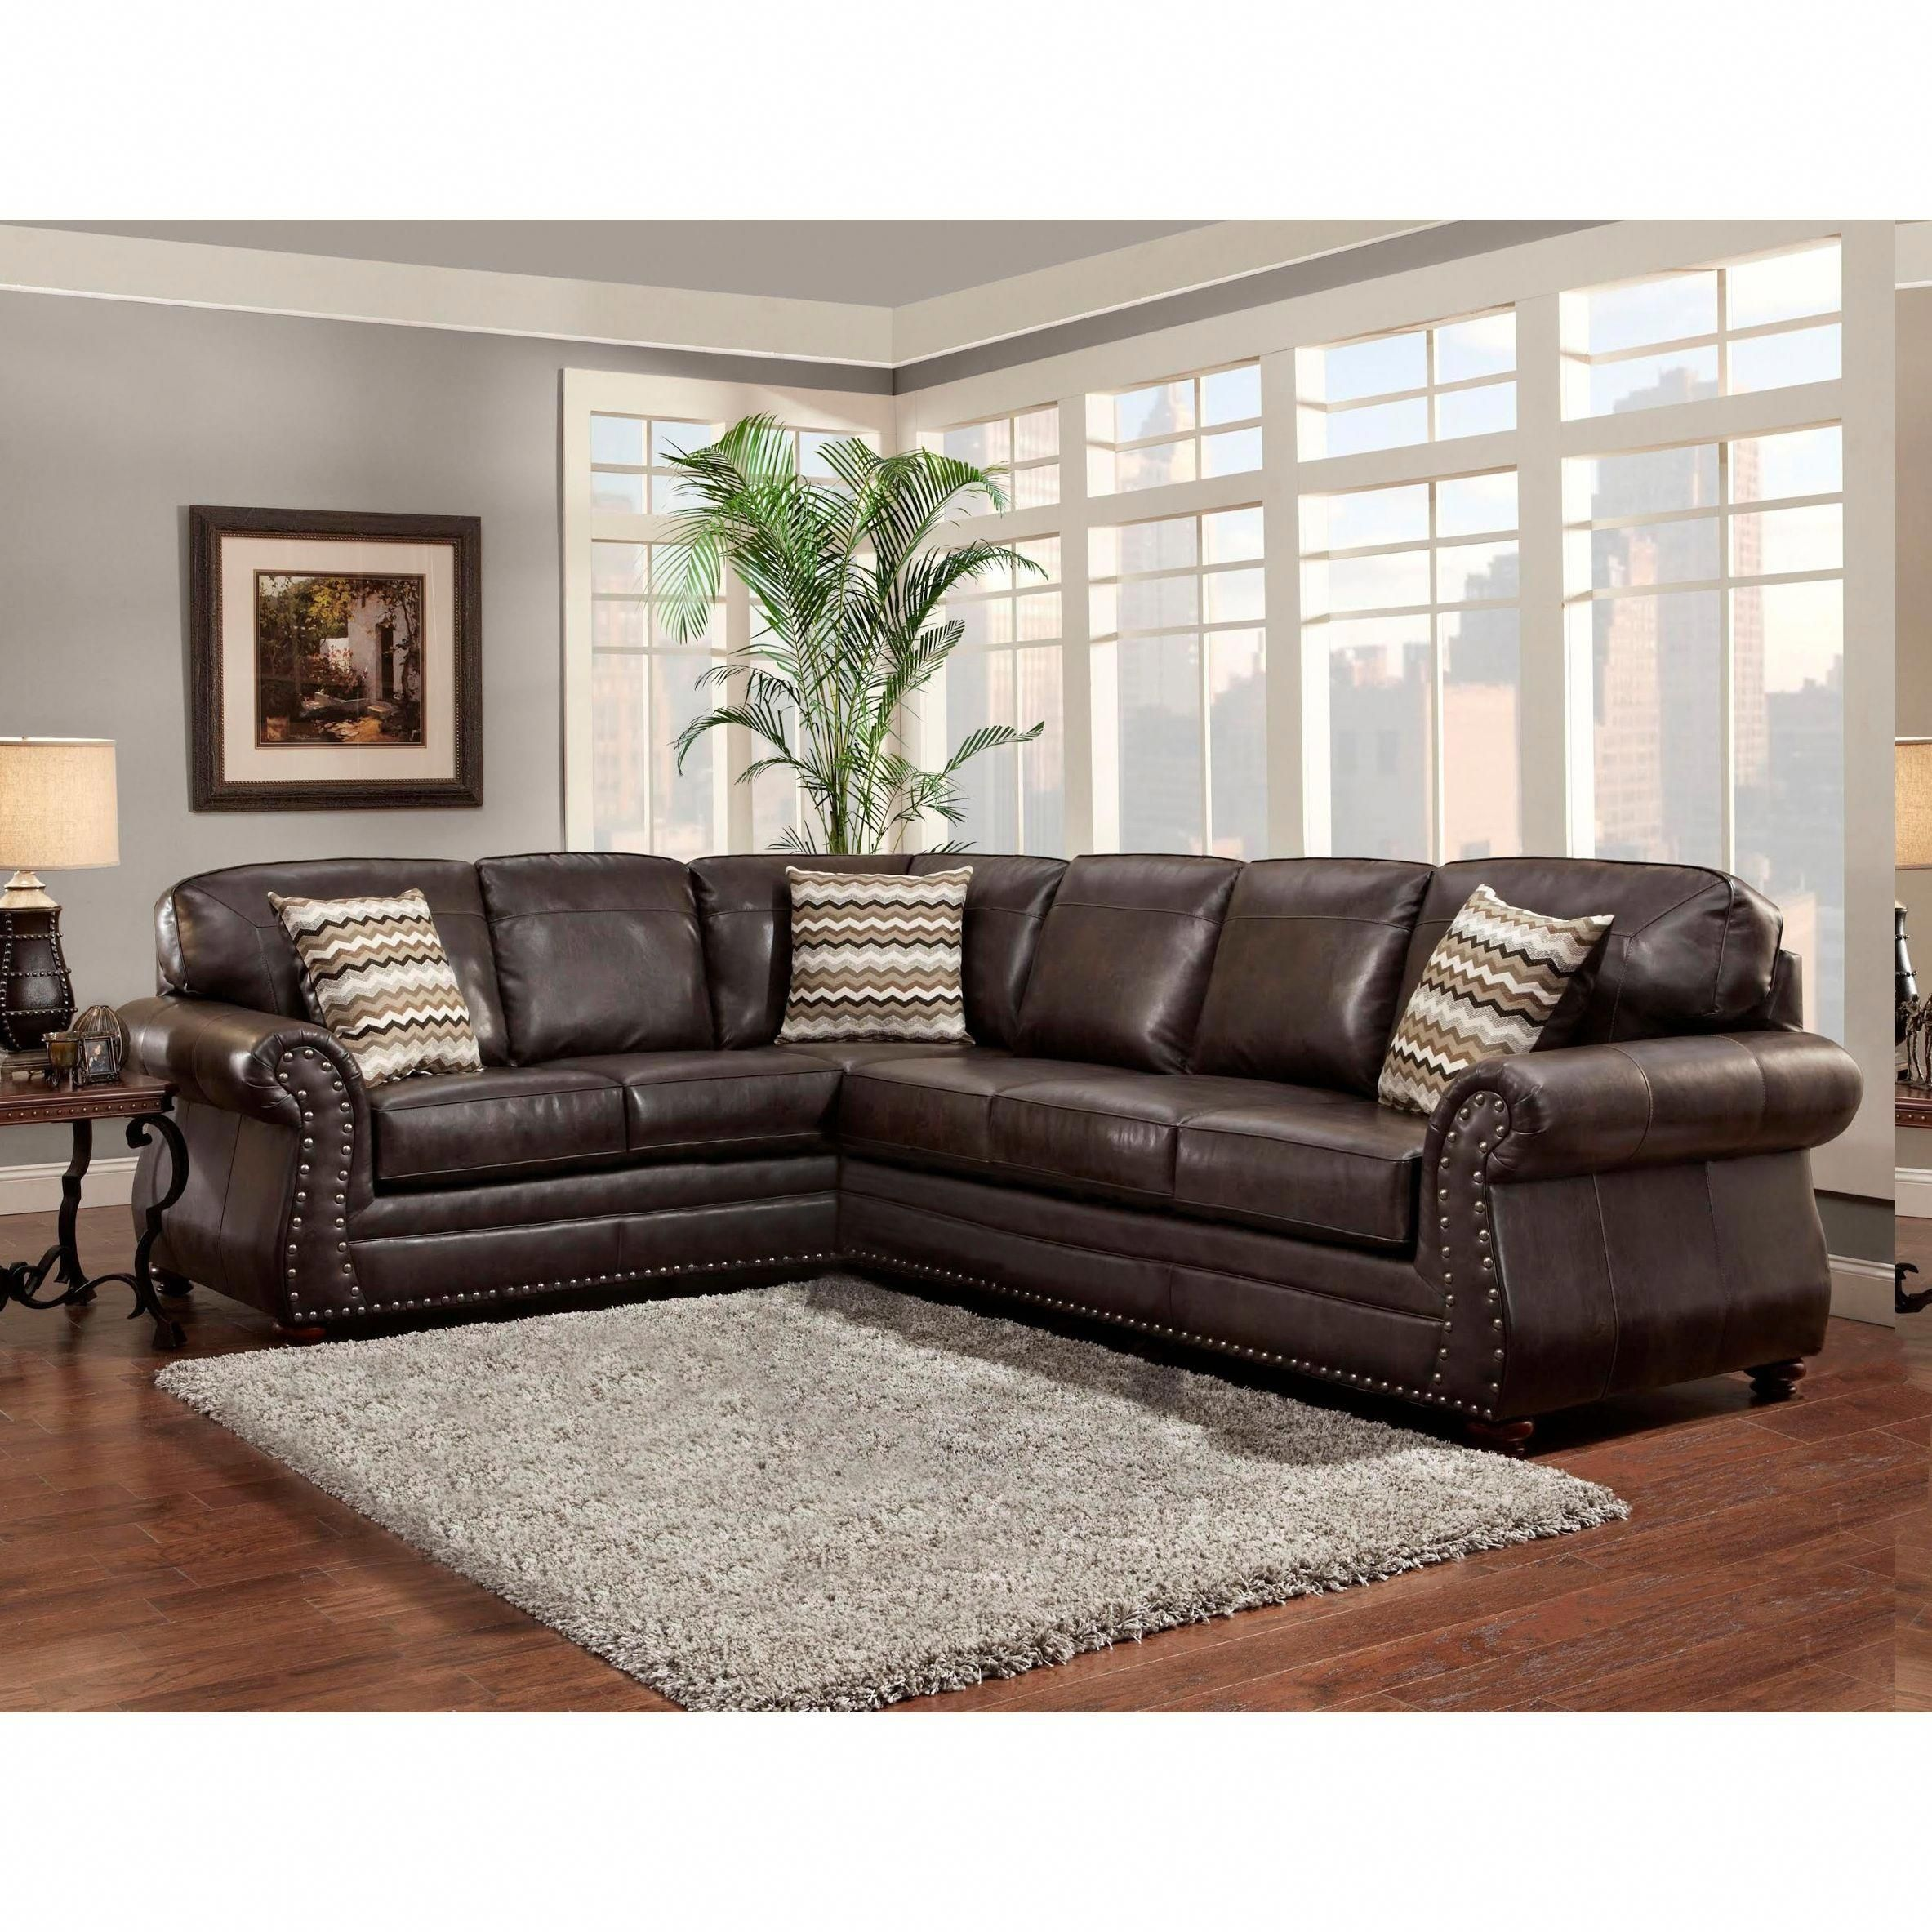 Brown Living Room Decor Ideas Brown Living Room Decor Brown Leather Living Room Furniture Leather Living Room Furniture